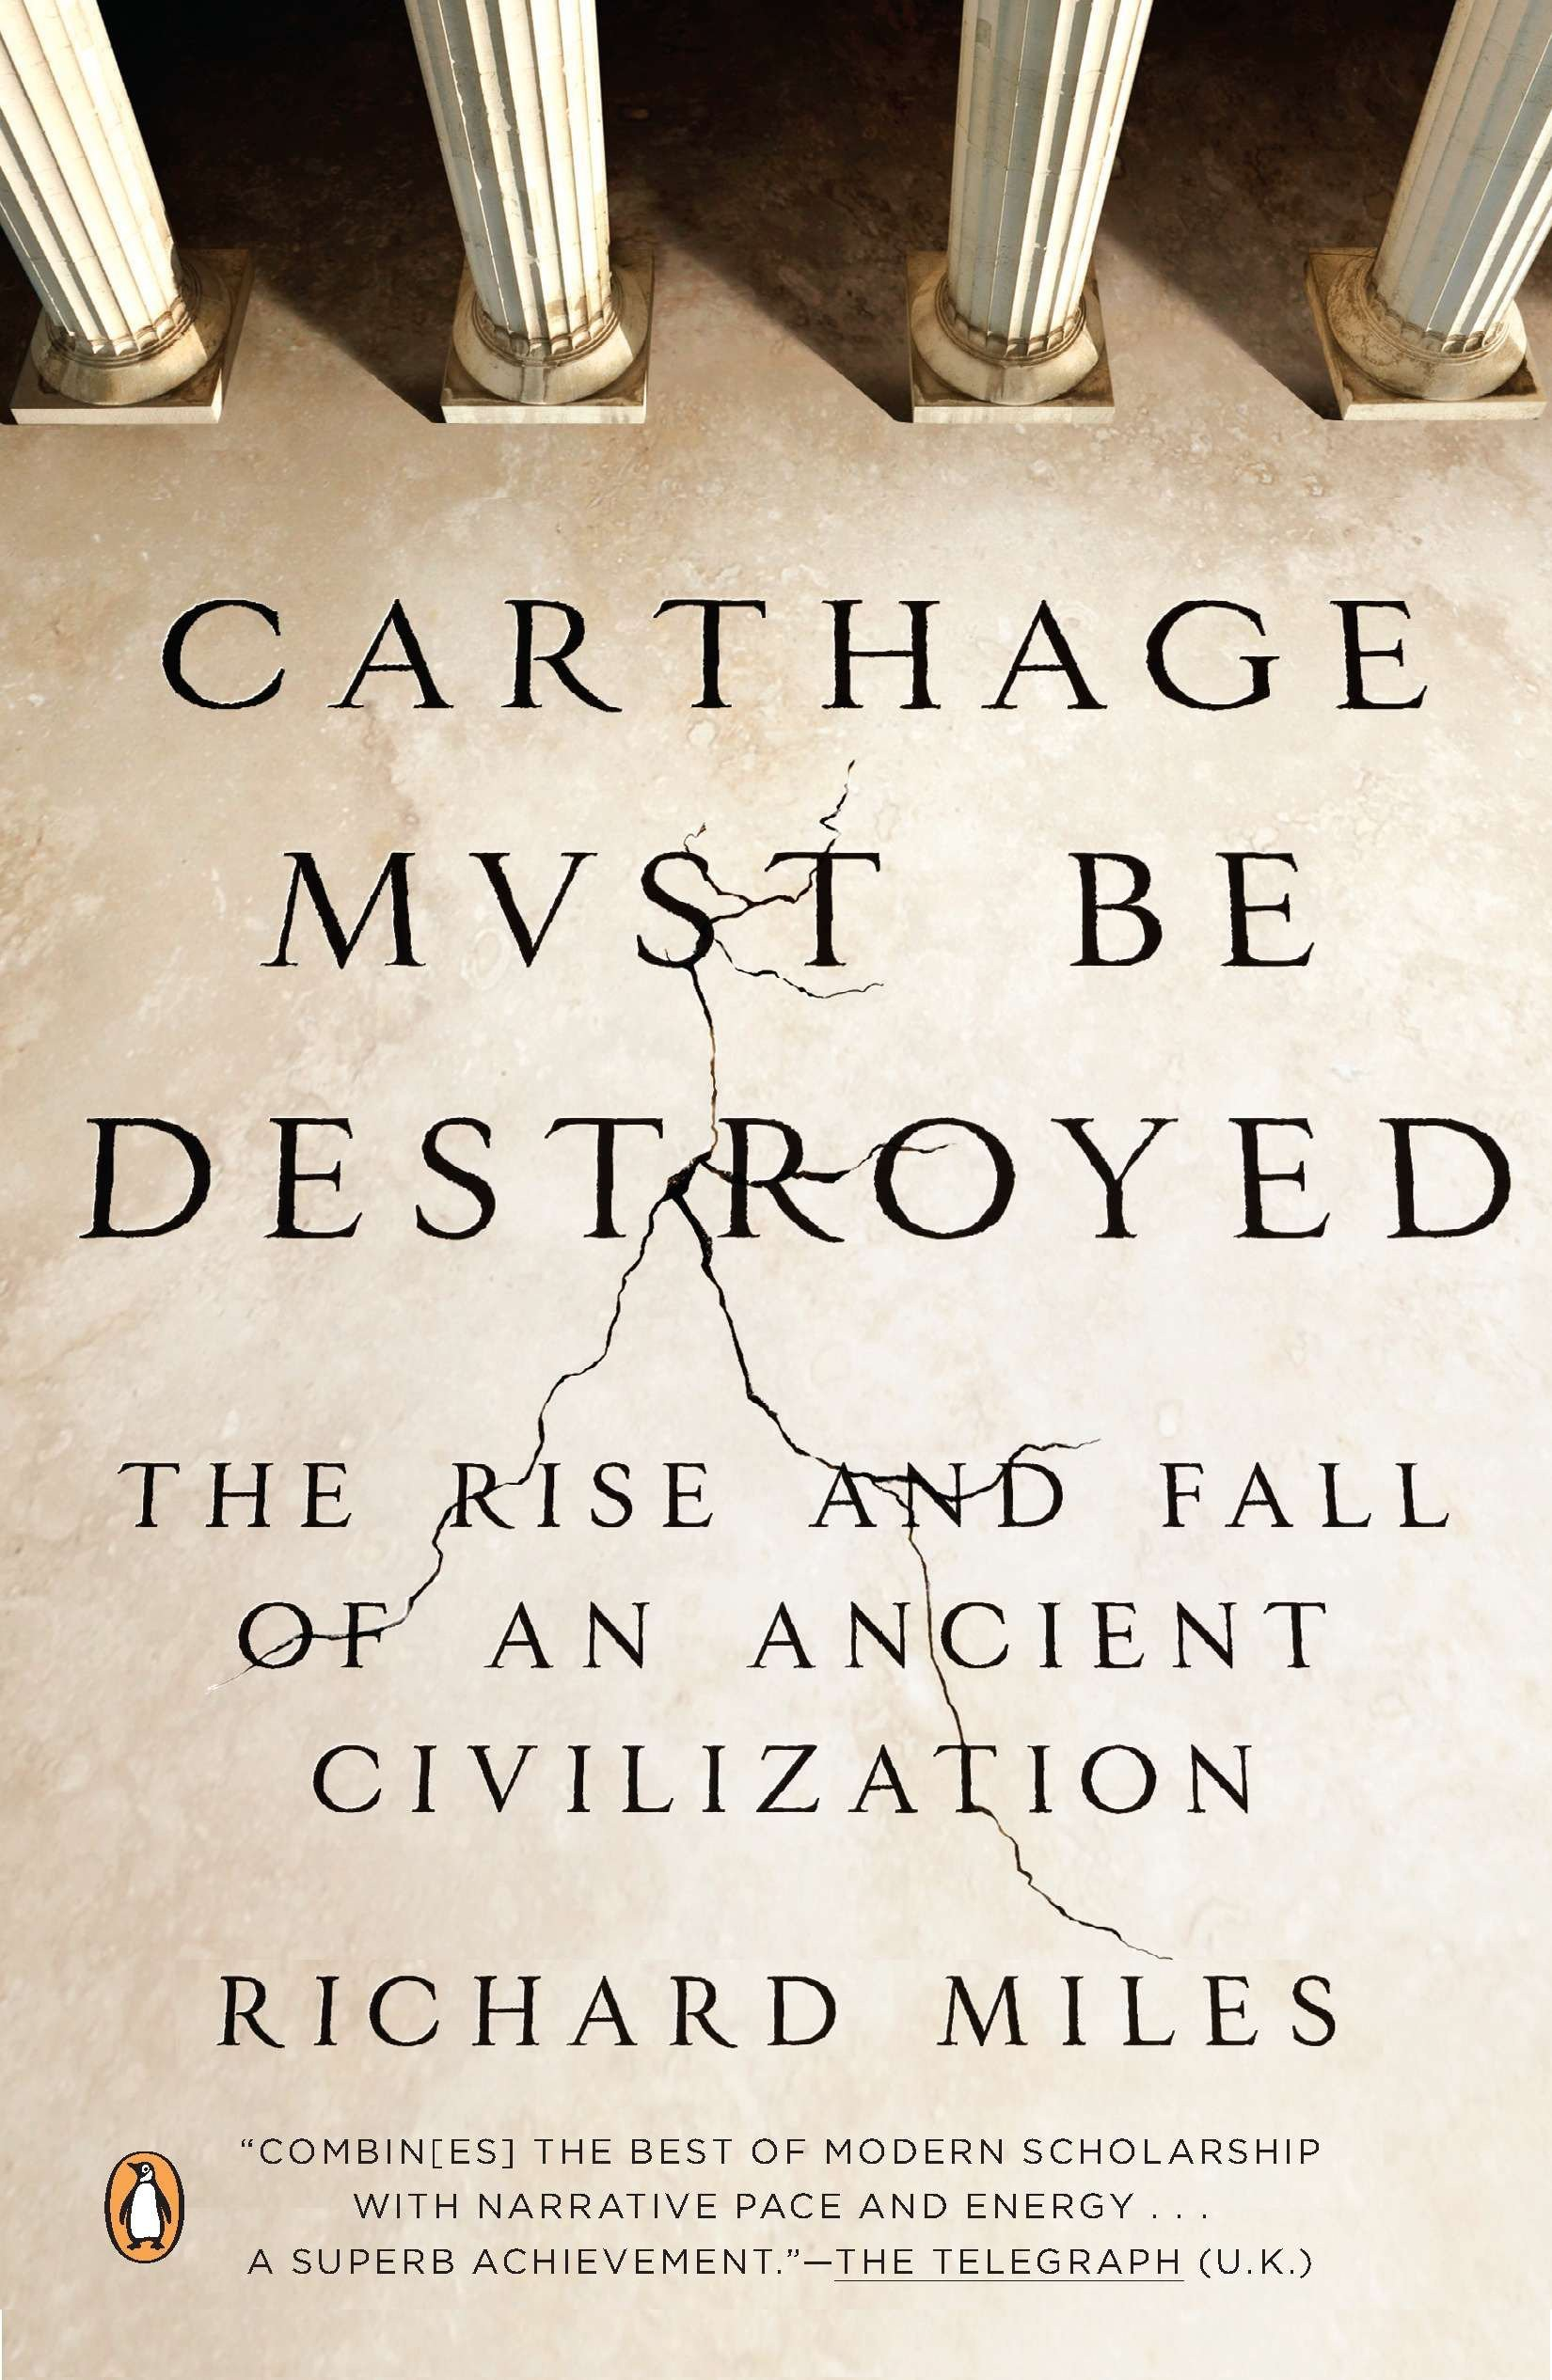 Carthage idiom must be destroyed: meaning 35